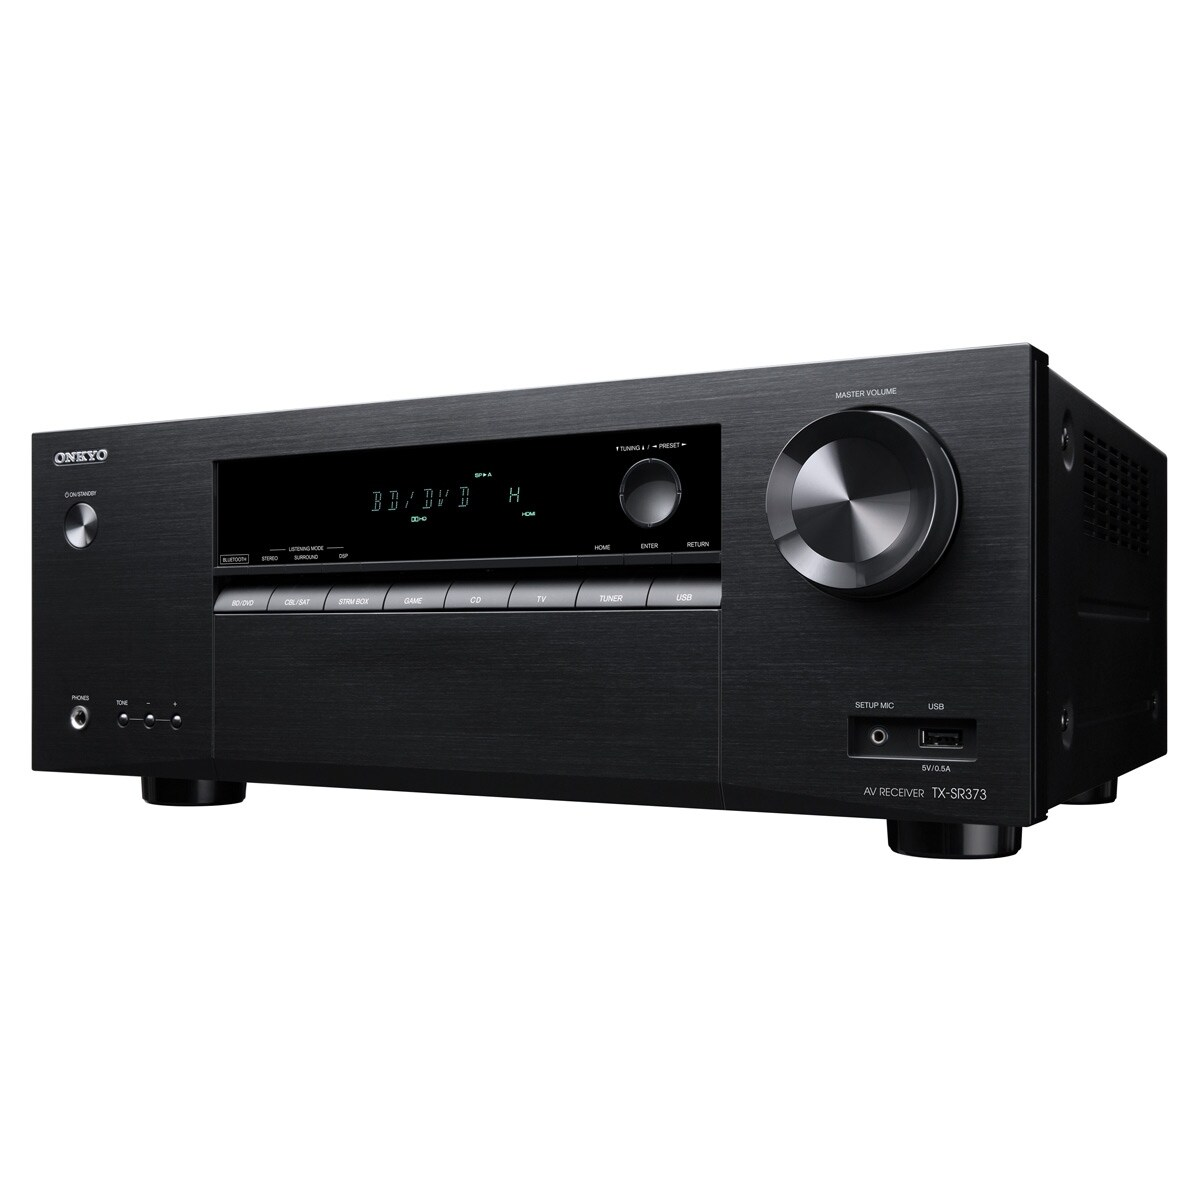 Shop Onkyo TX-SR373 5.2 Channel A/V Receiver - Free Shipping Today -  Overstock.com - 18971518